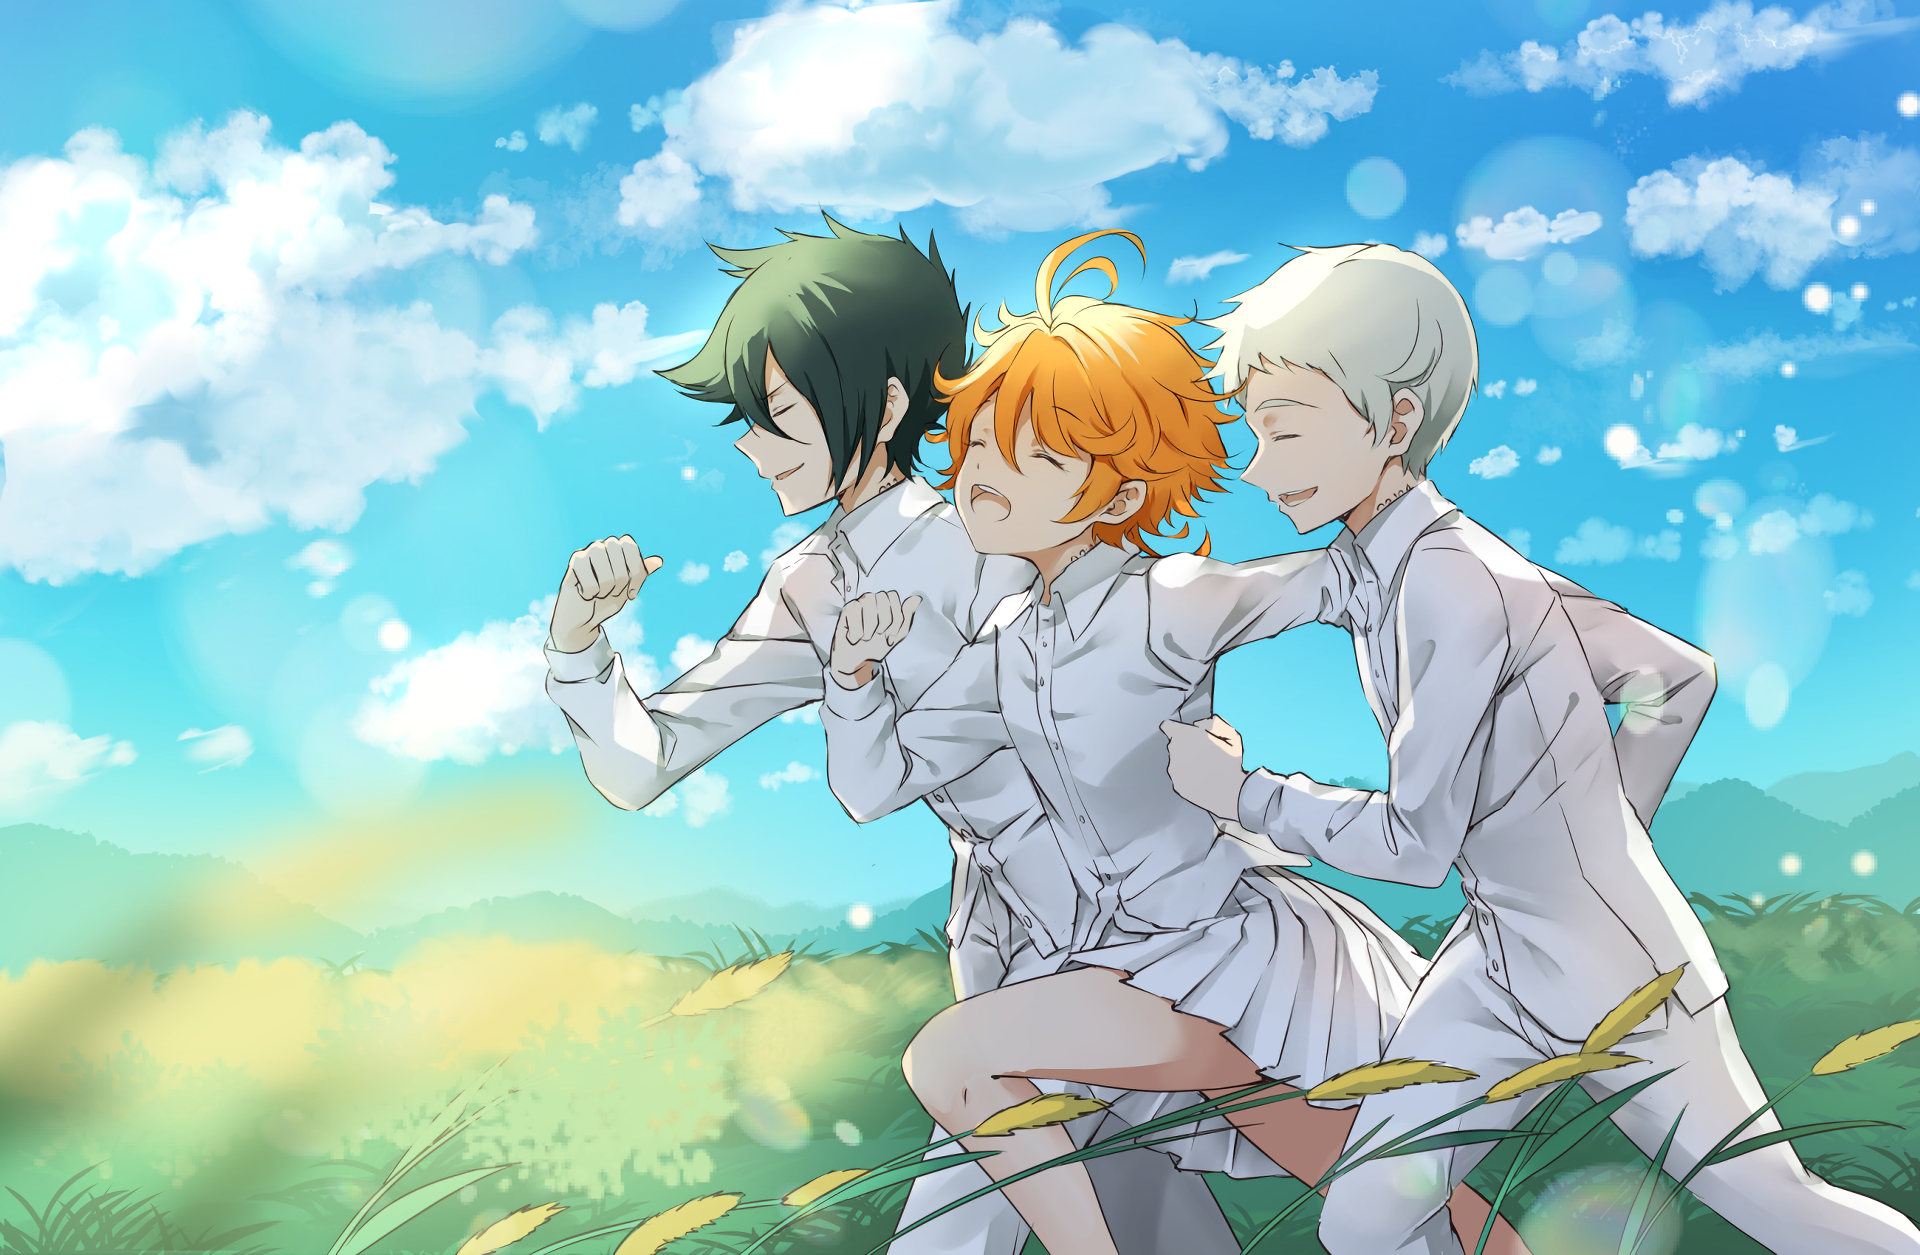 Emma The Promised Neverland Neverland Anime Poster Prints